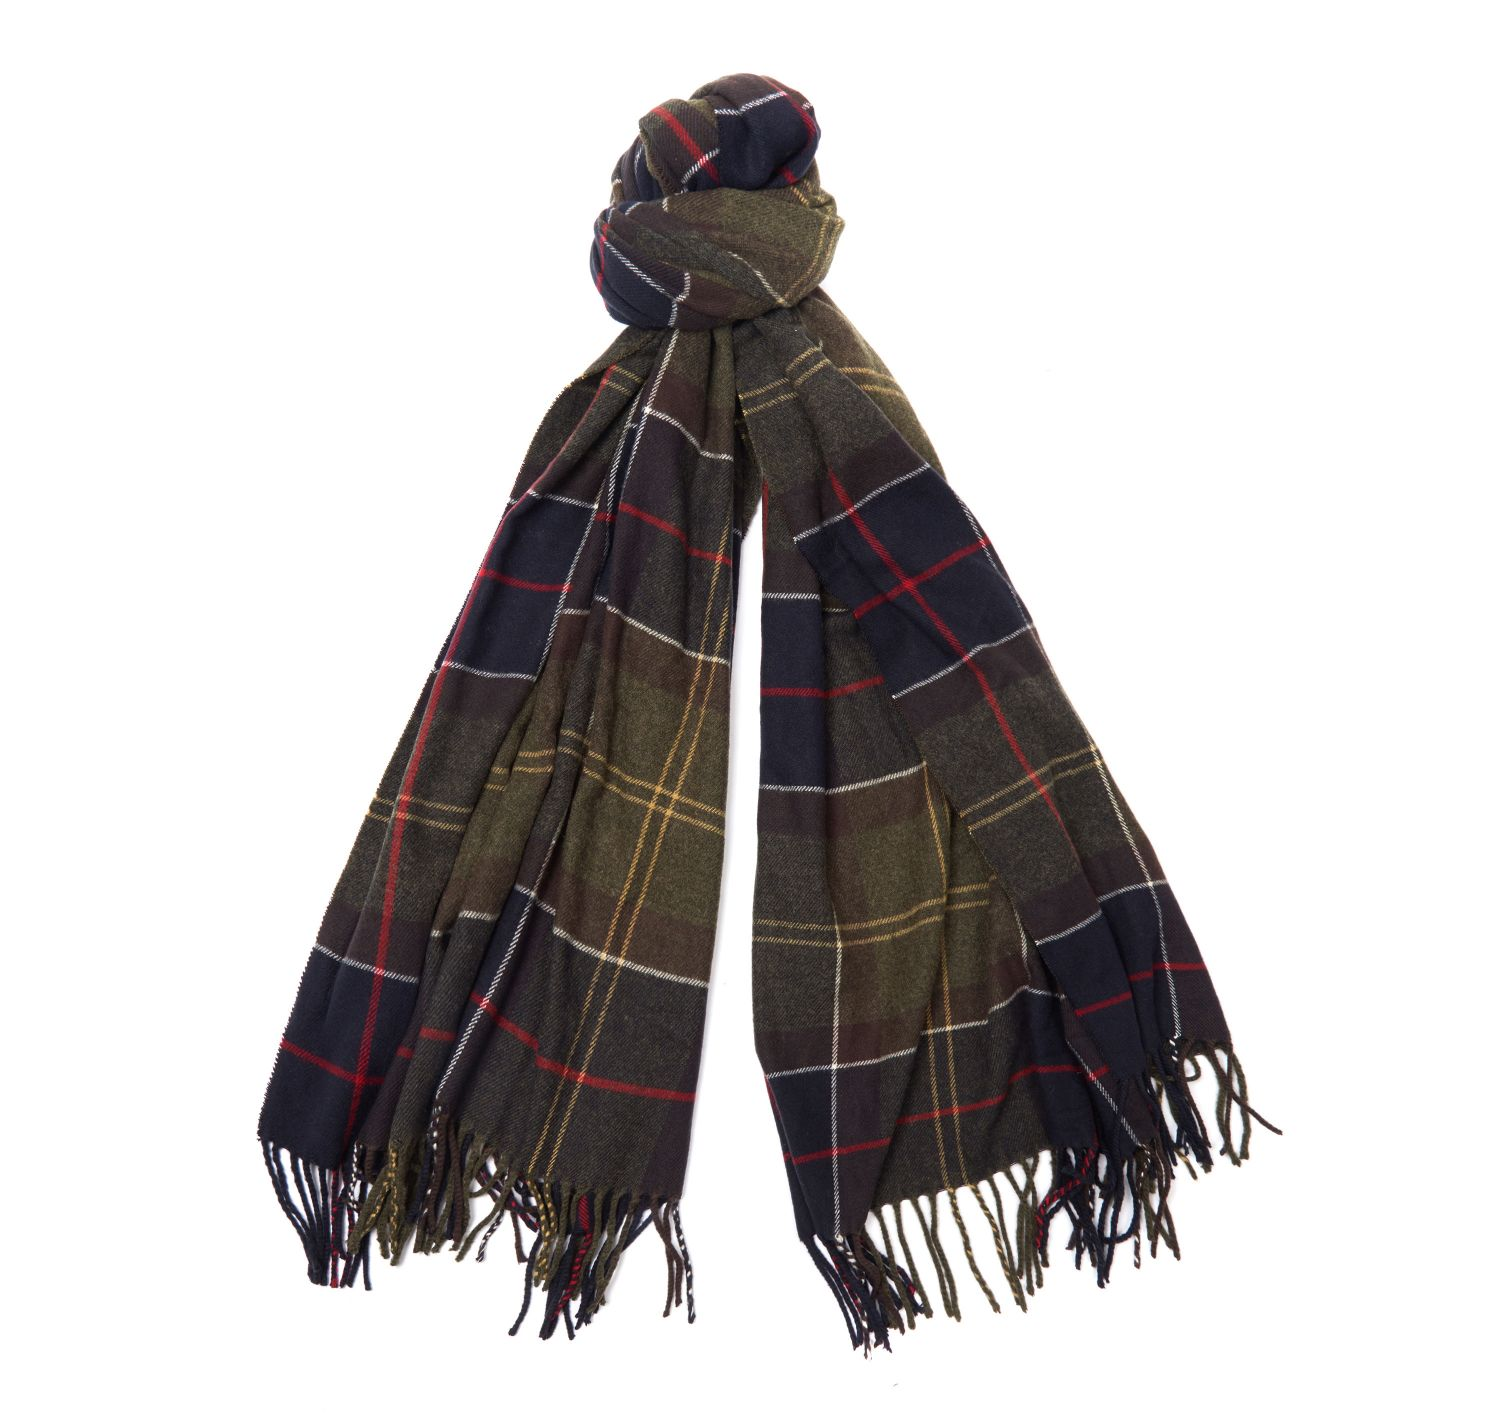 Barbour Hailes Tartan Wrap Scarf - North Shore Saddlery